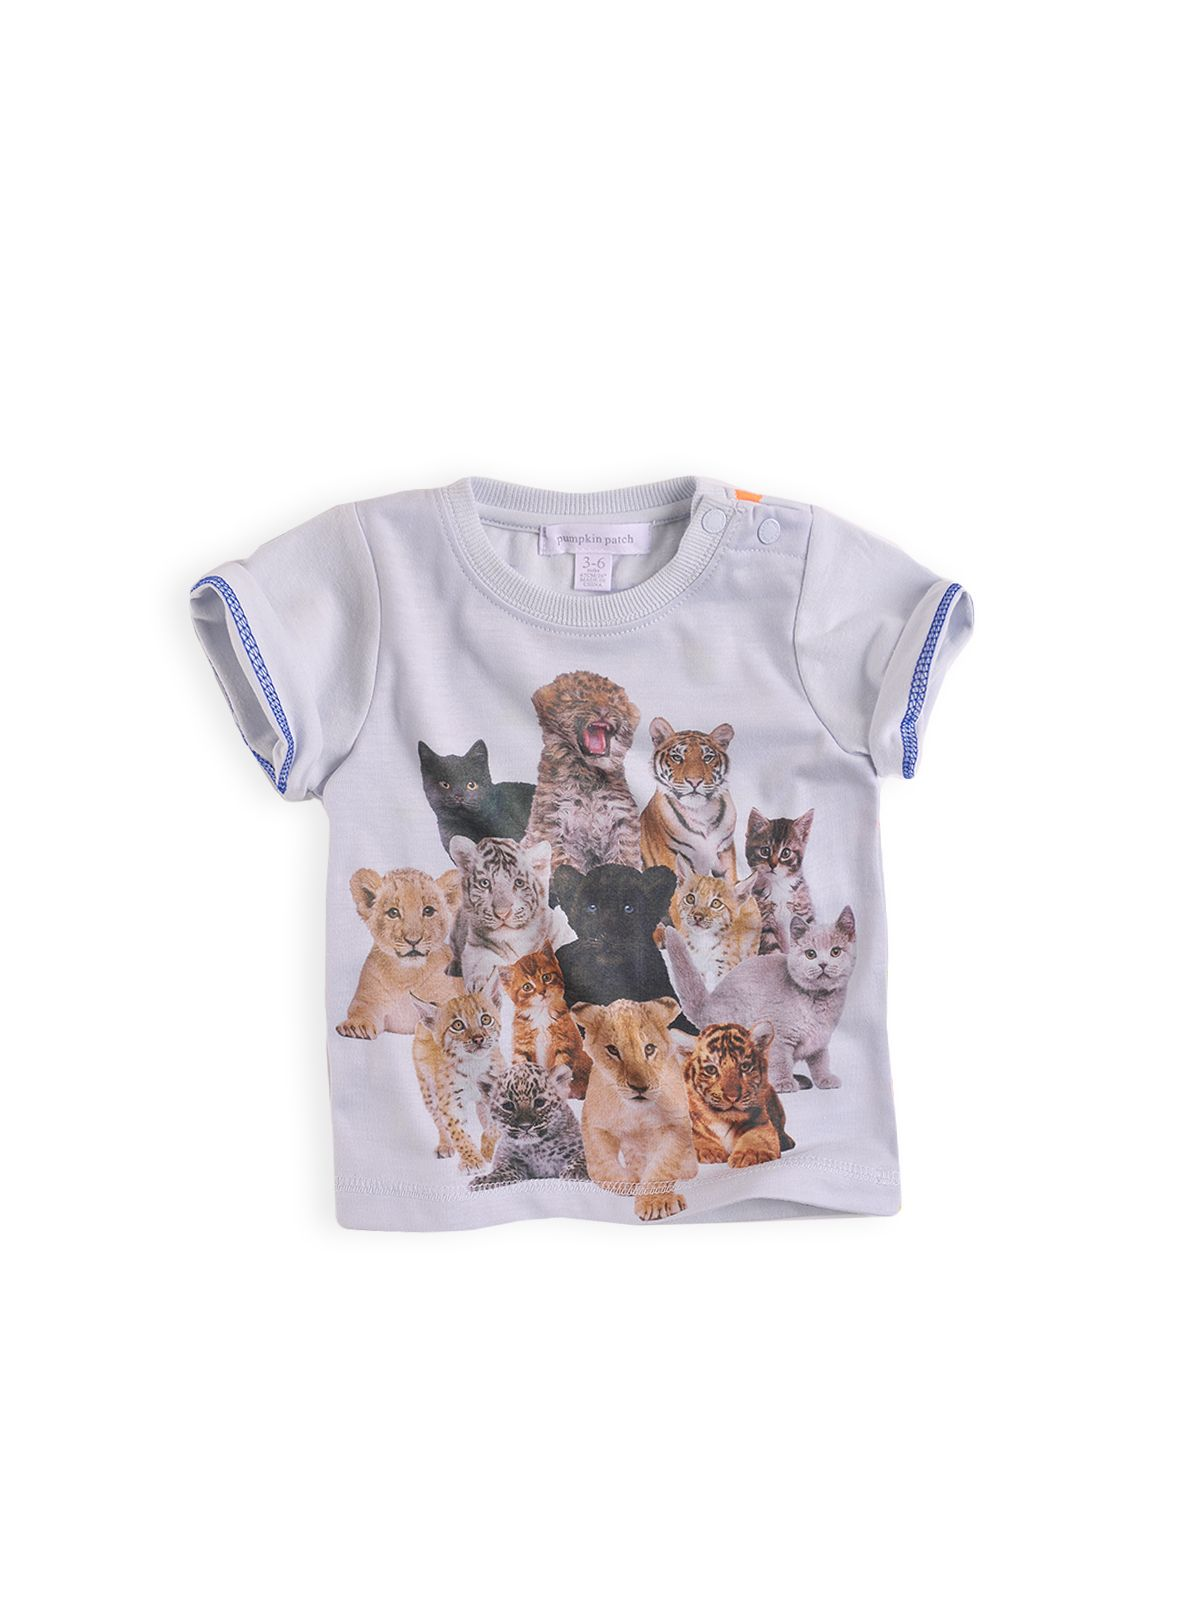 Boys printed fashion t-shirt